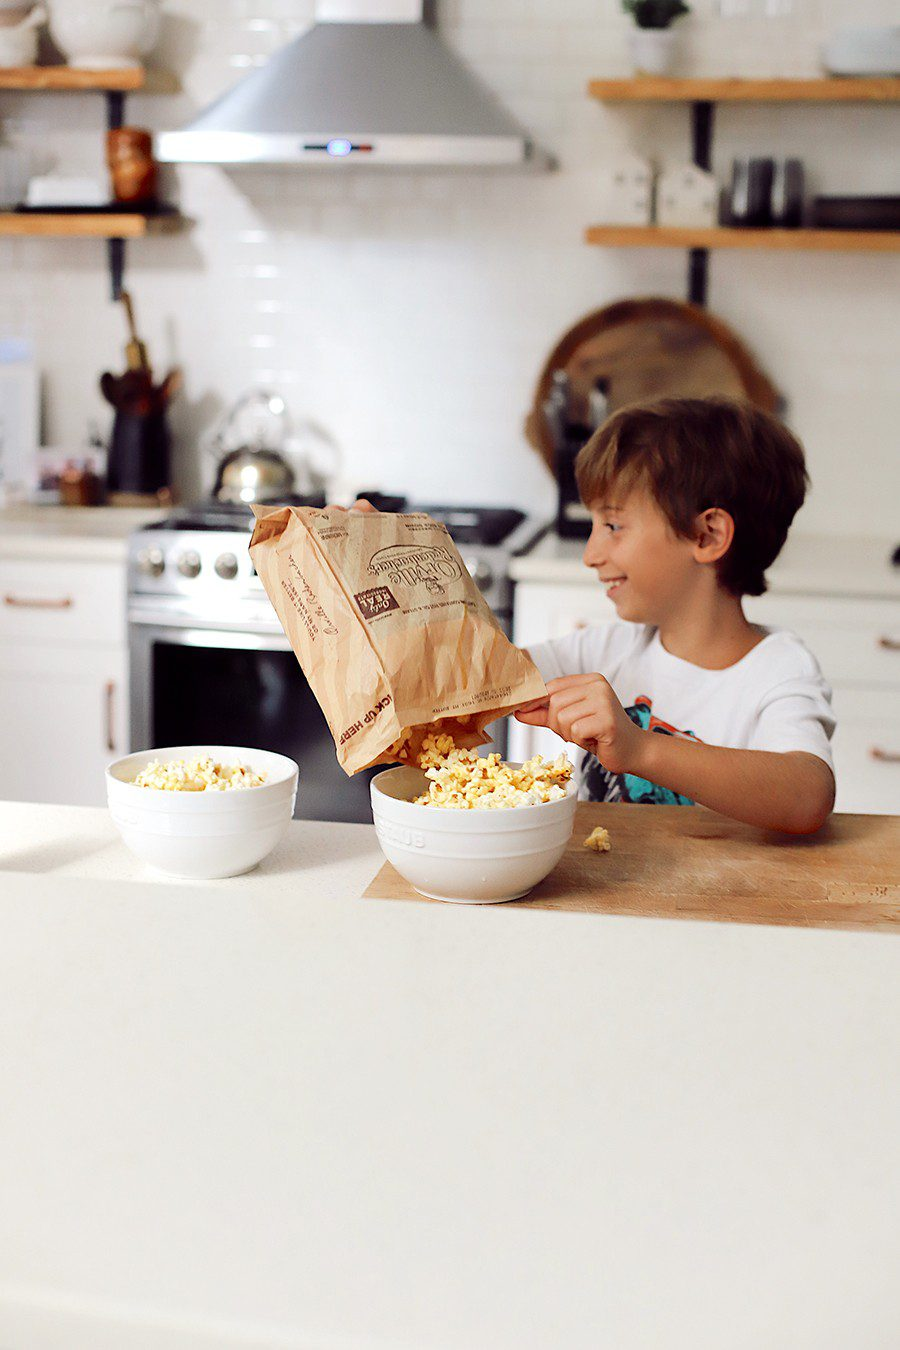 10 Popcorn Games for a Great Family Fun Night | Family Fun Night by popular Florida lifestyle blog, Fresh Mommy Blog: image of a boy dumping Orville Redenbacher's microwave popcorn into white bowls.